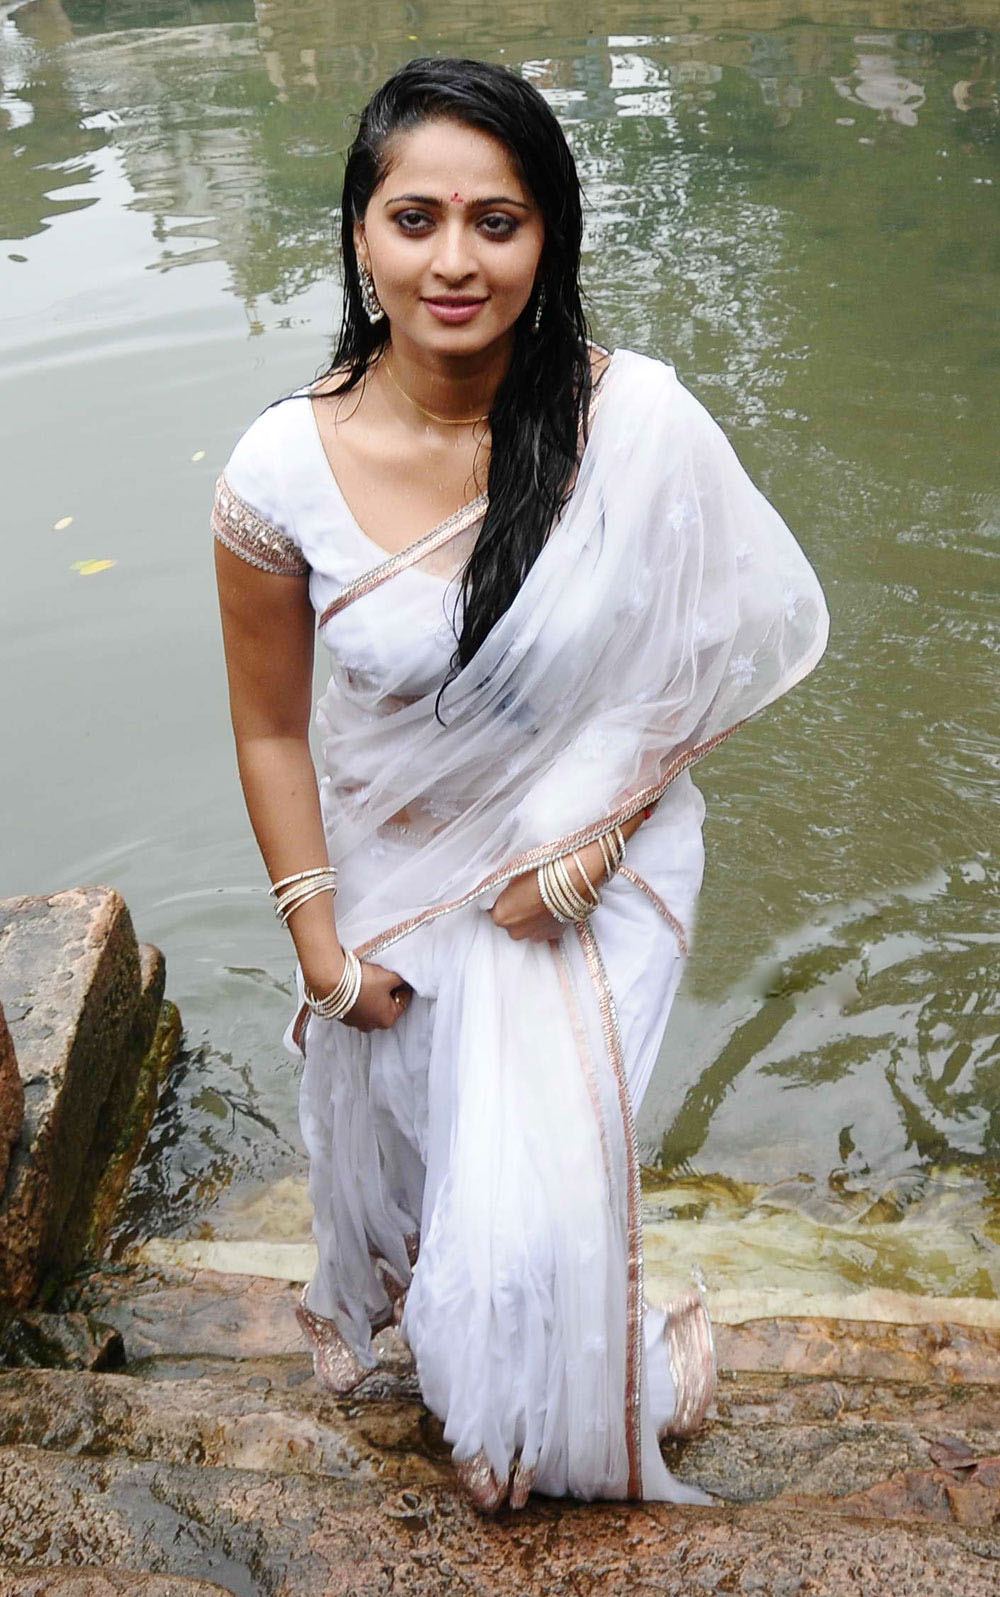 Hot In Water : Anushka latest hot wet white saree stills without water